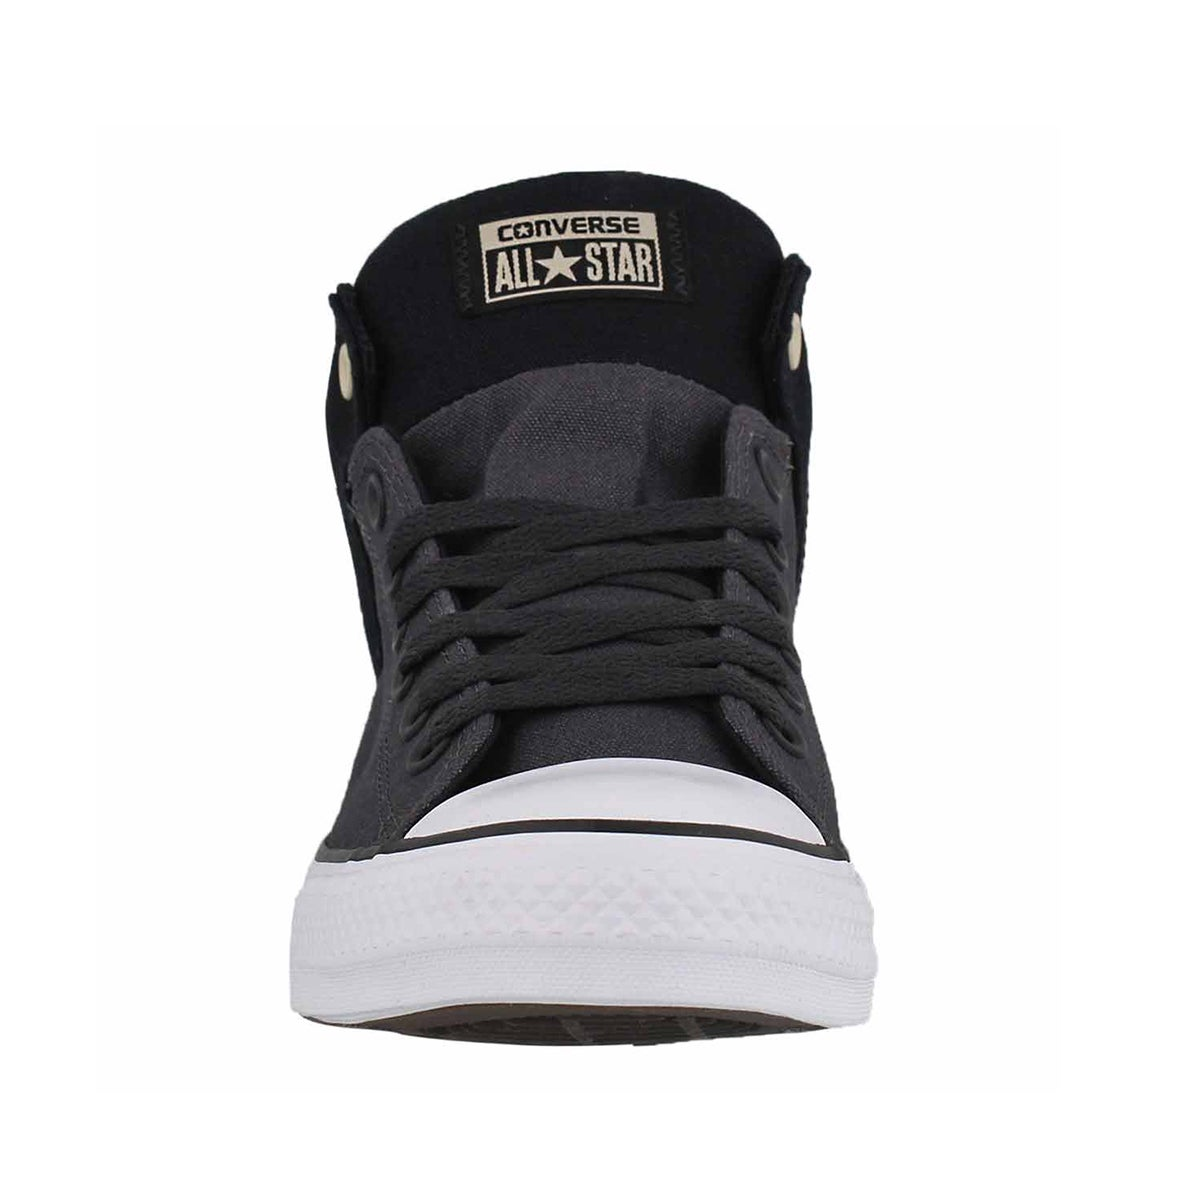 Mns CTAS High Street black/gry snkr